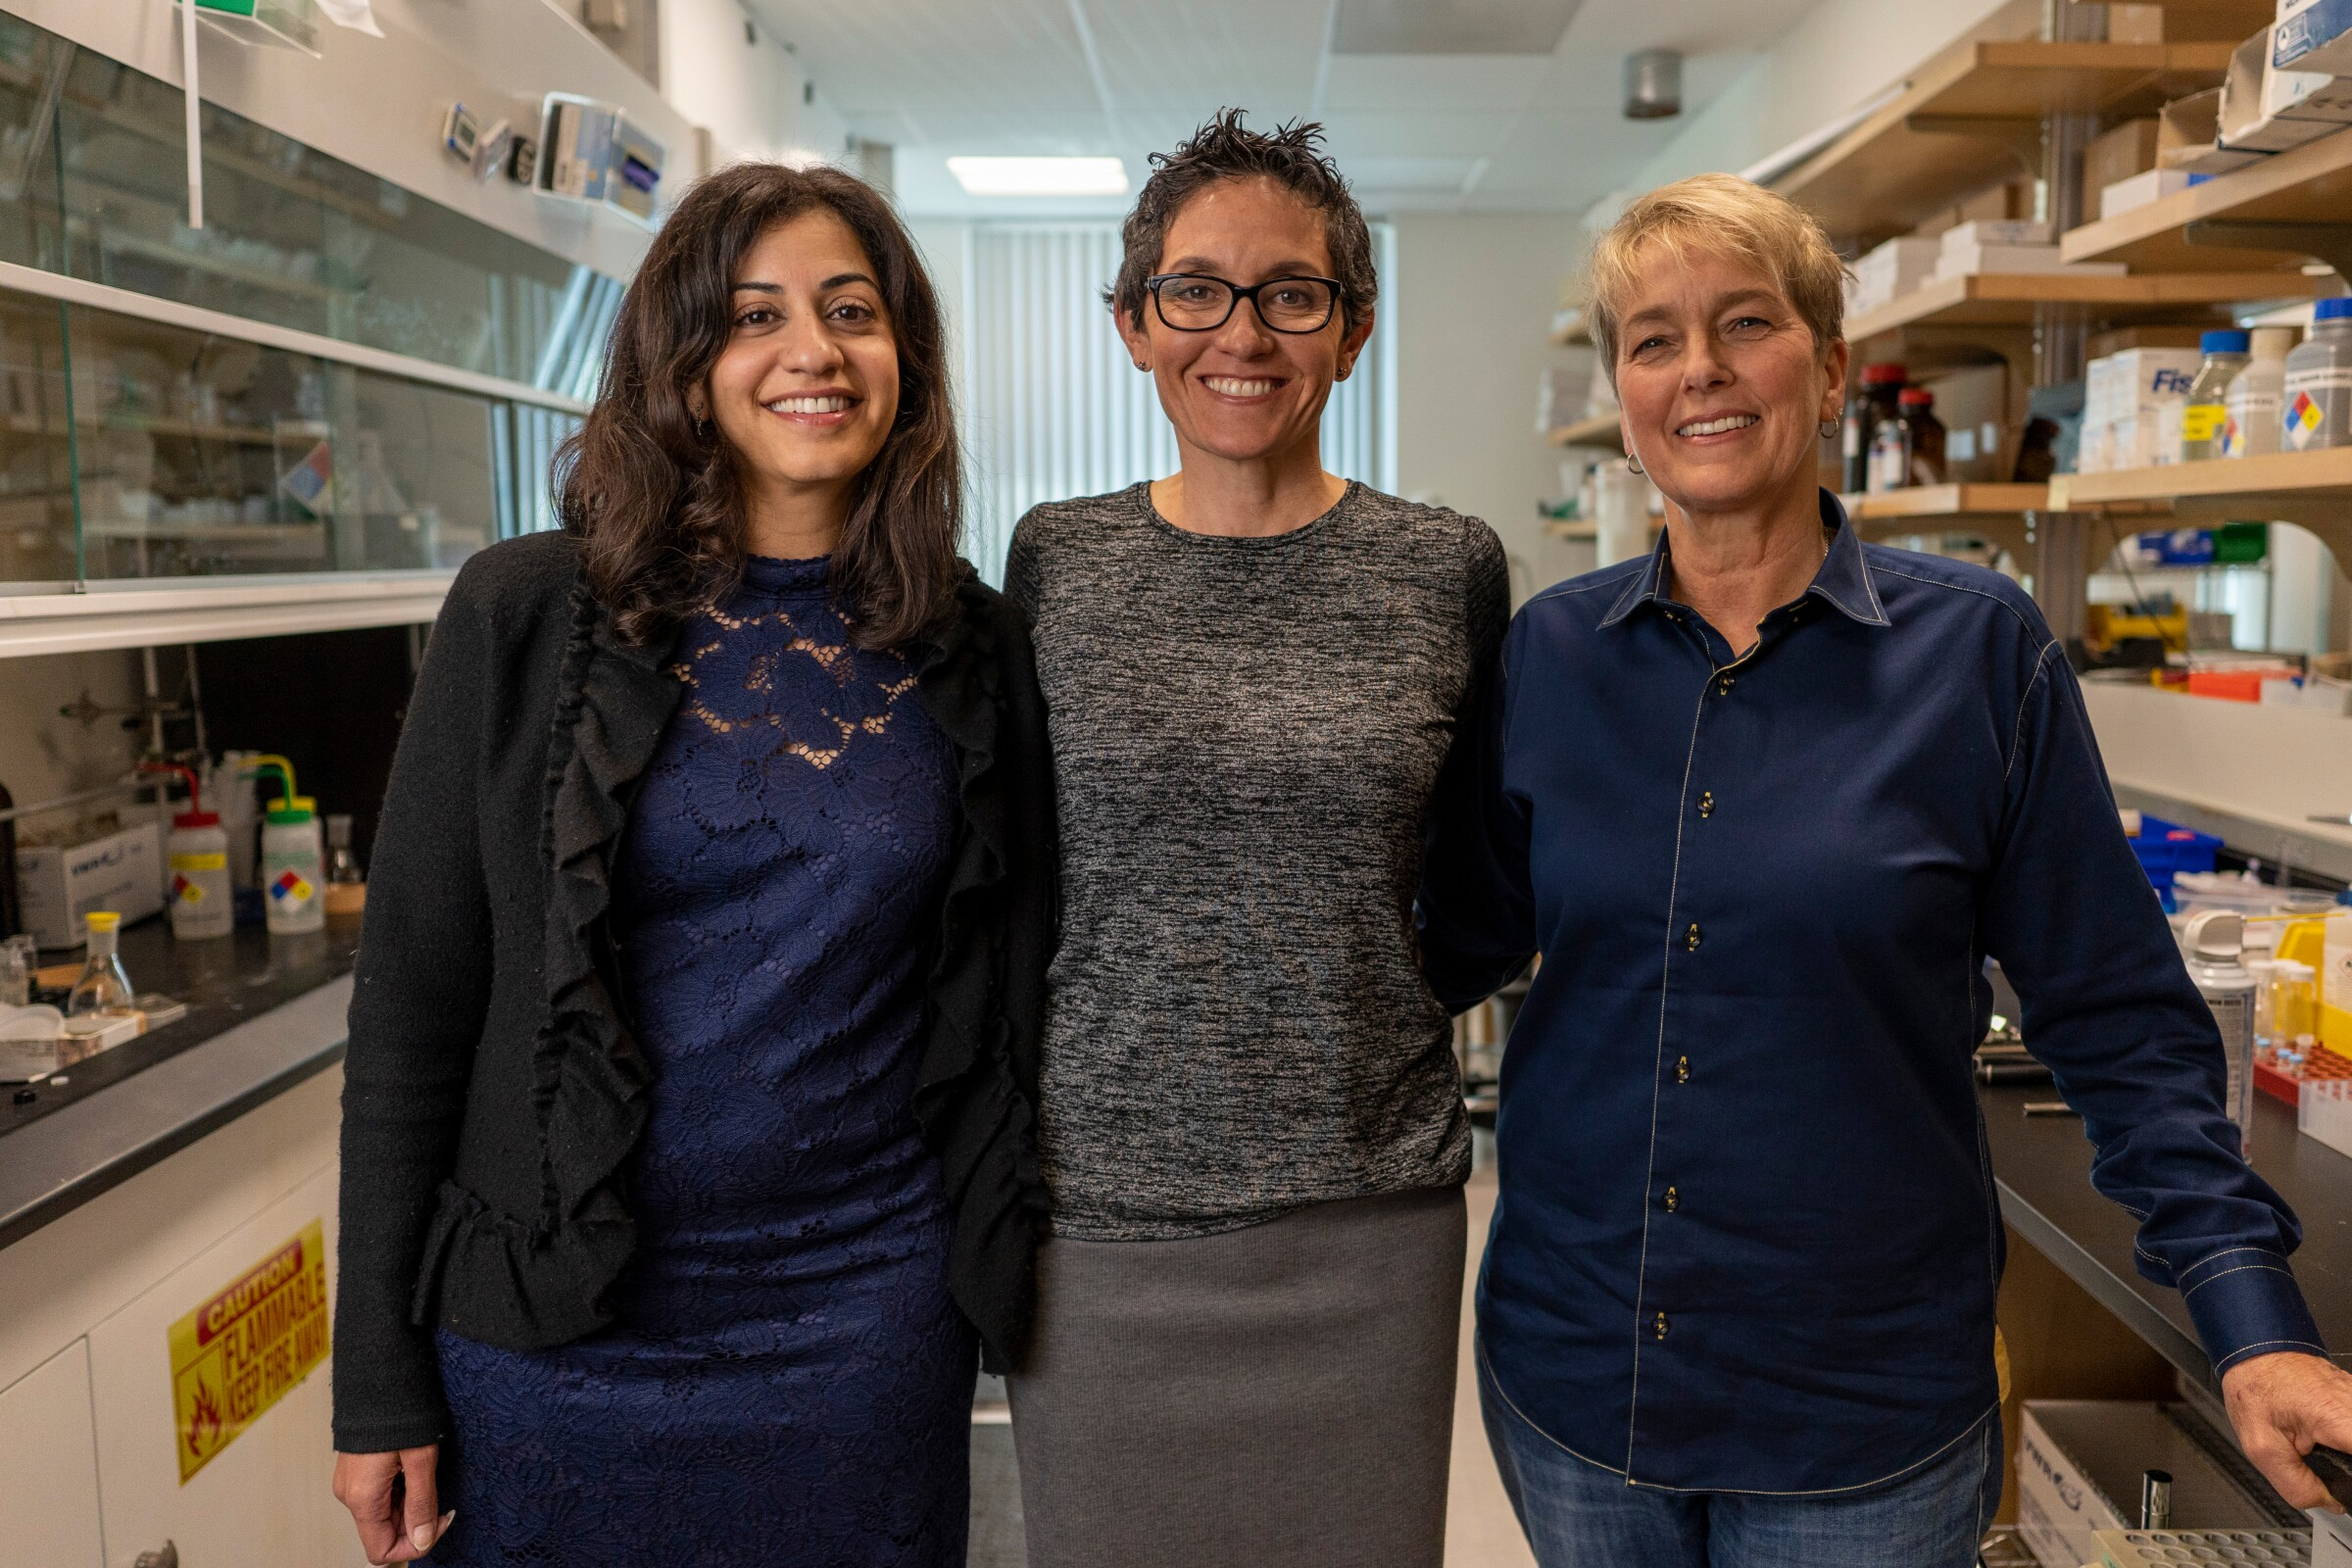 Left, Dr. Sheila Gujrathi, CEO of Gossamer Bio; center, Athena Countouriotis, CEO of Turning Point Therapeutics; right, Laura Shawver, CEO of Synthorx.